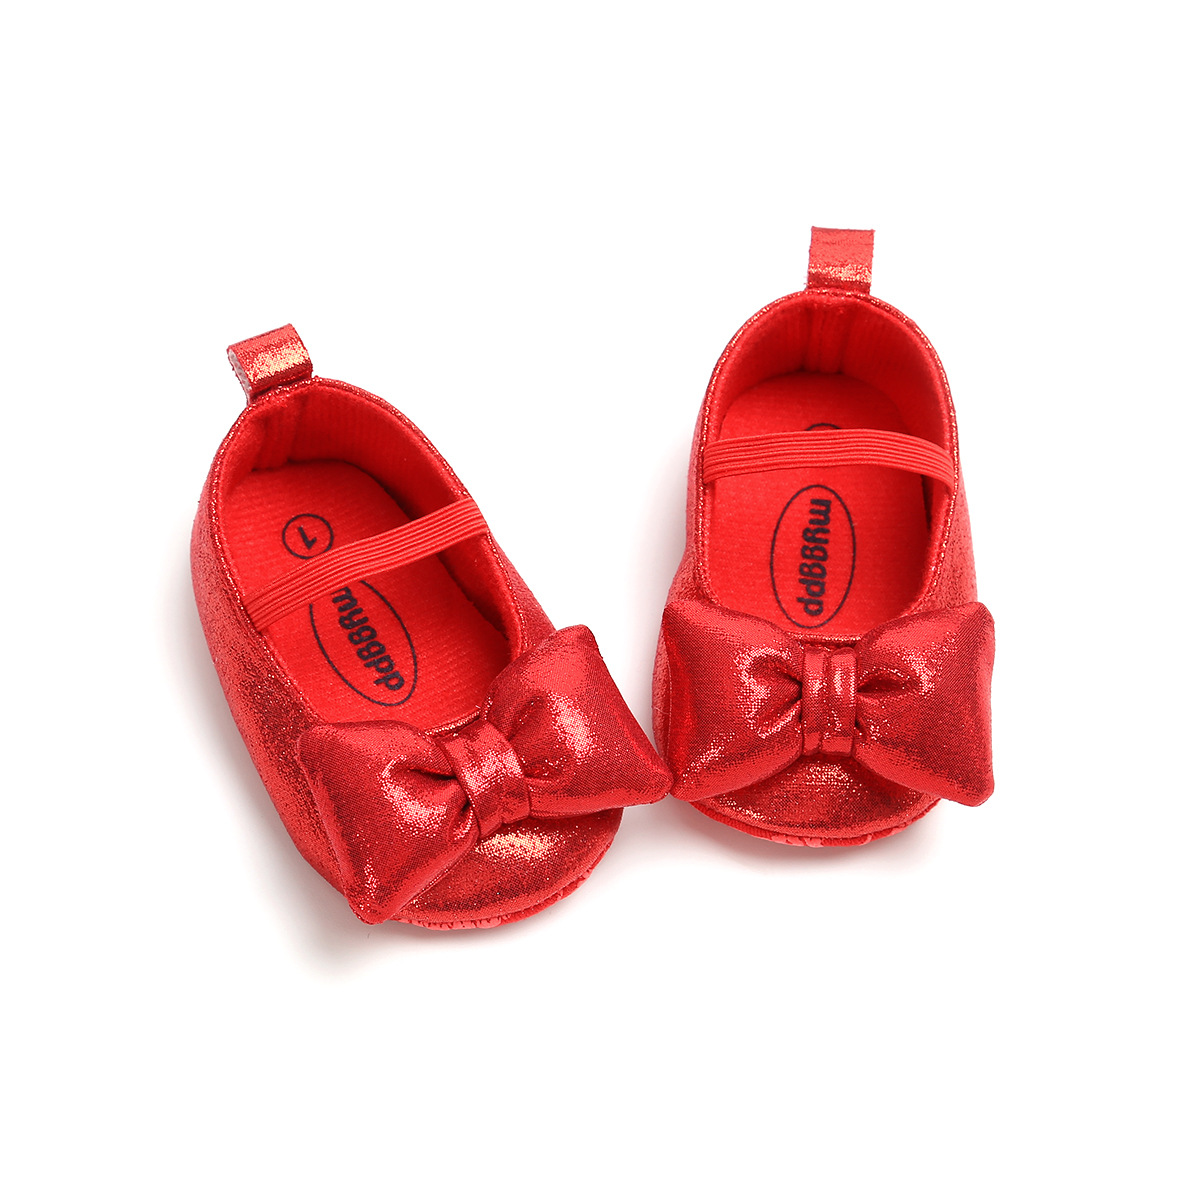 0-18M Big Autterfly Baby Girls Shoes Princess Shoes Soft Sole PU Soft Sole Non-slip Toddler Shoes Baby